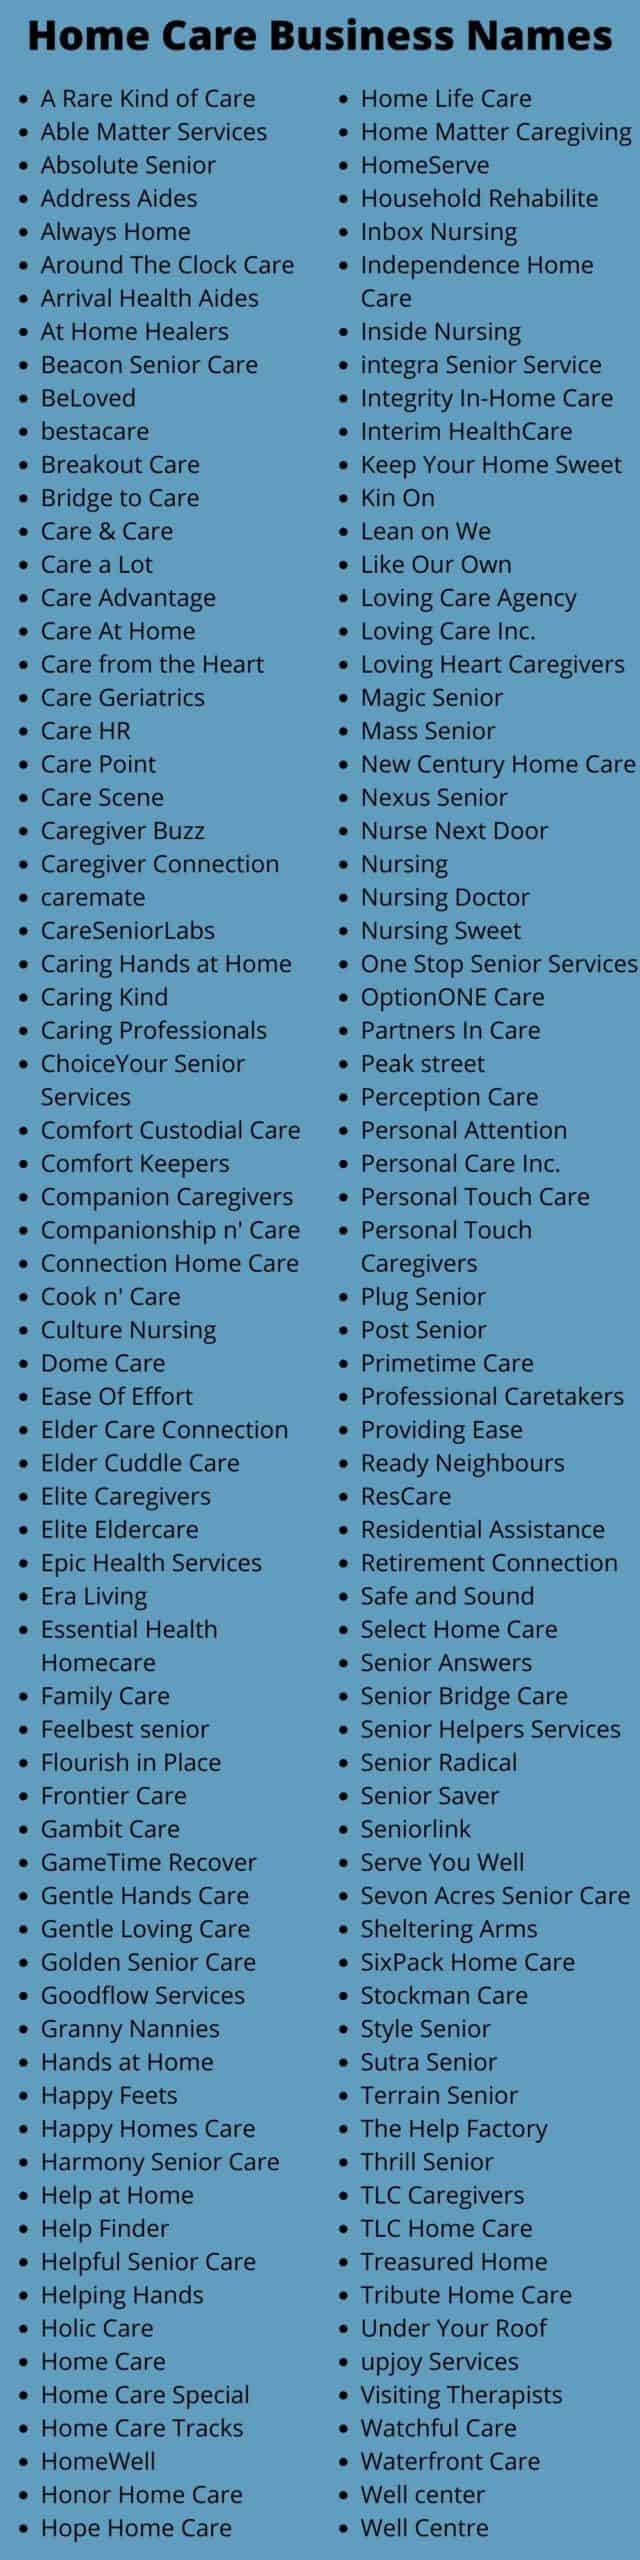 Home Care Business Names